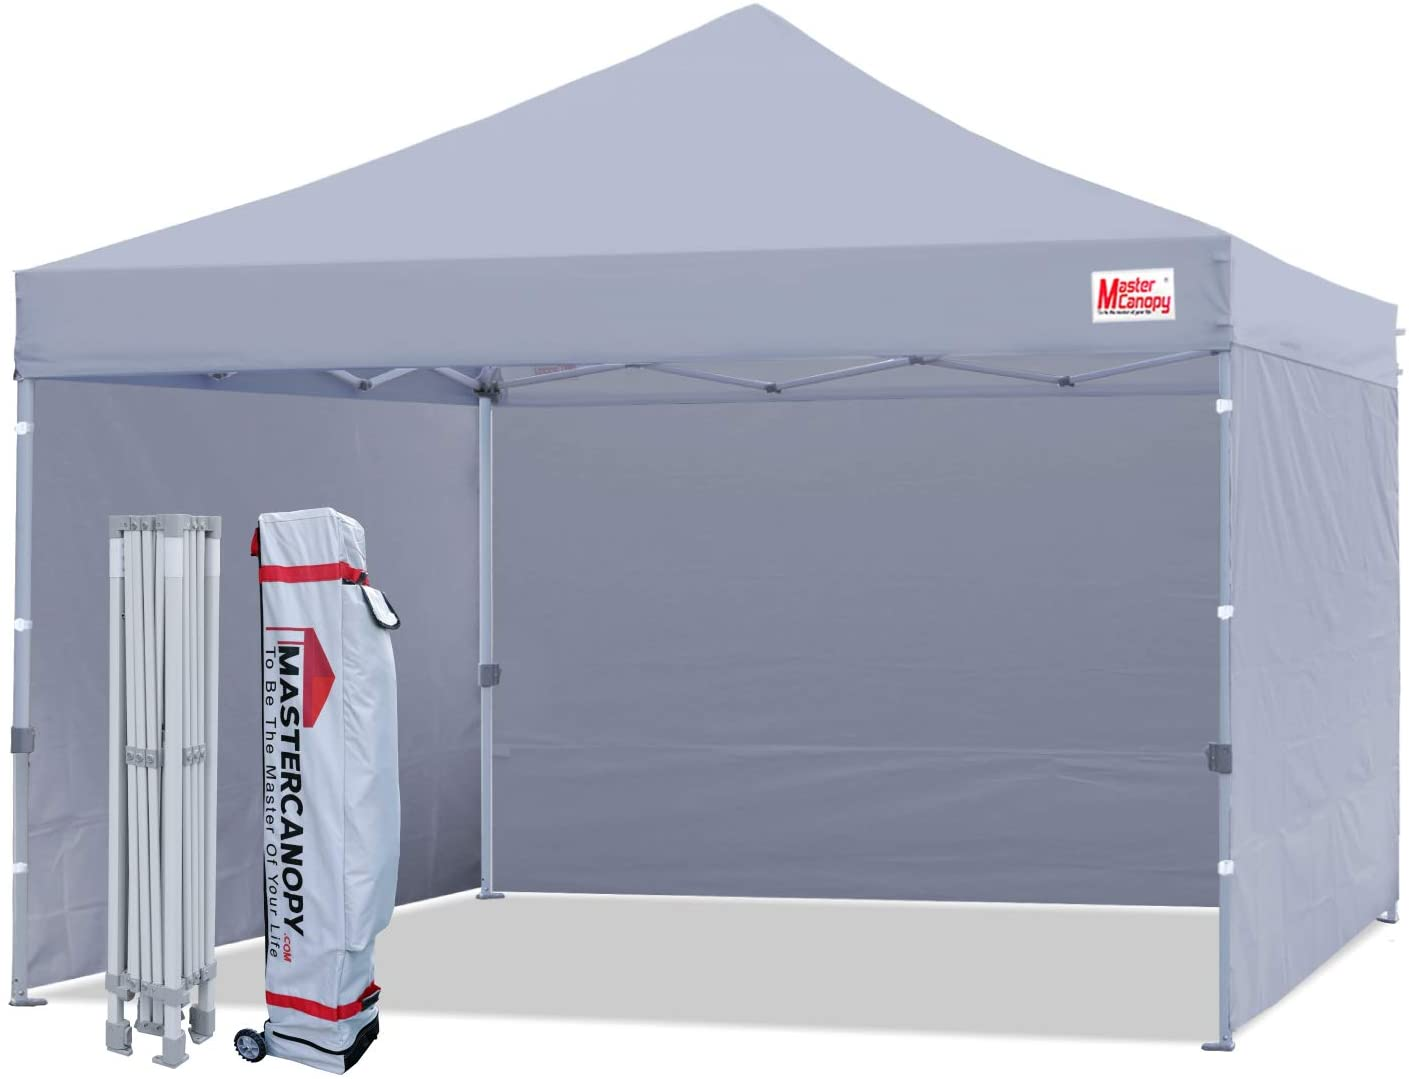 MASTERCANOPY Ez Pop-up Canopy Tent With Removable Sidewalls